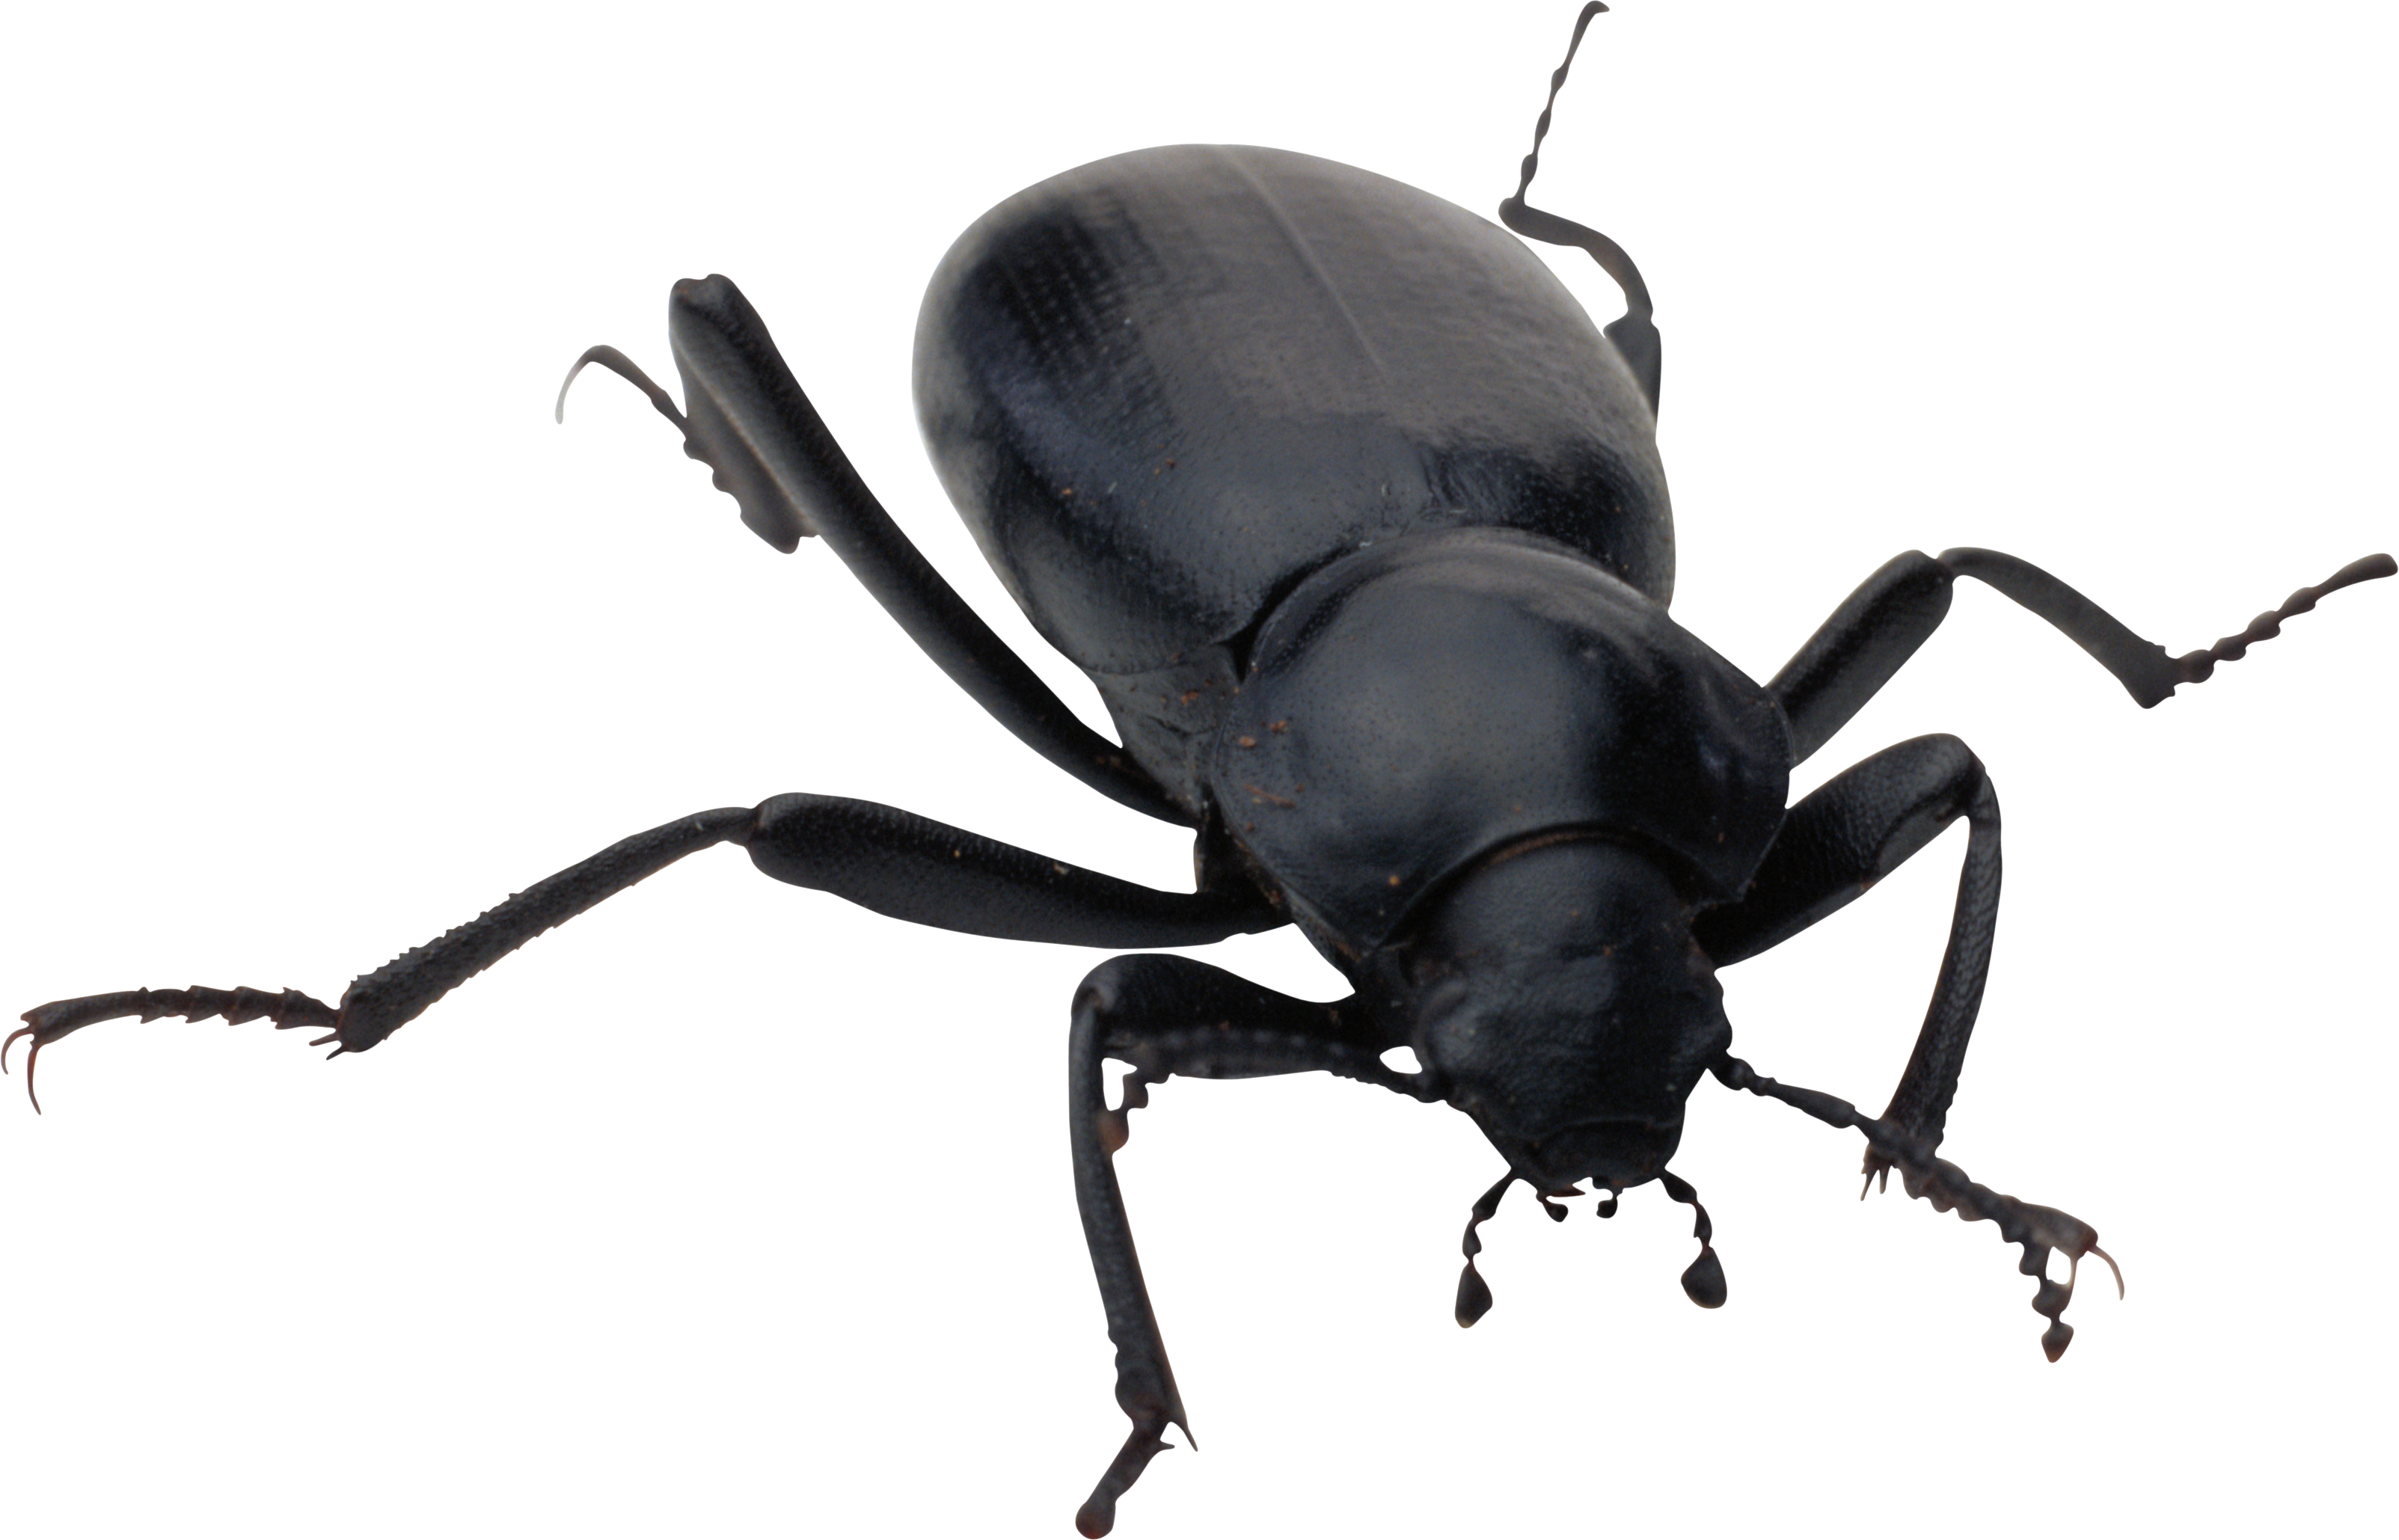 Bug transparent. Hd png images pluspng